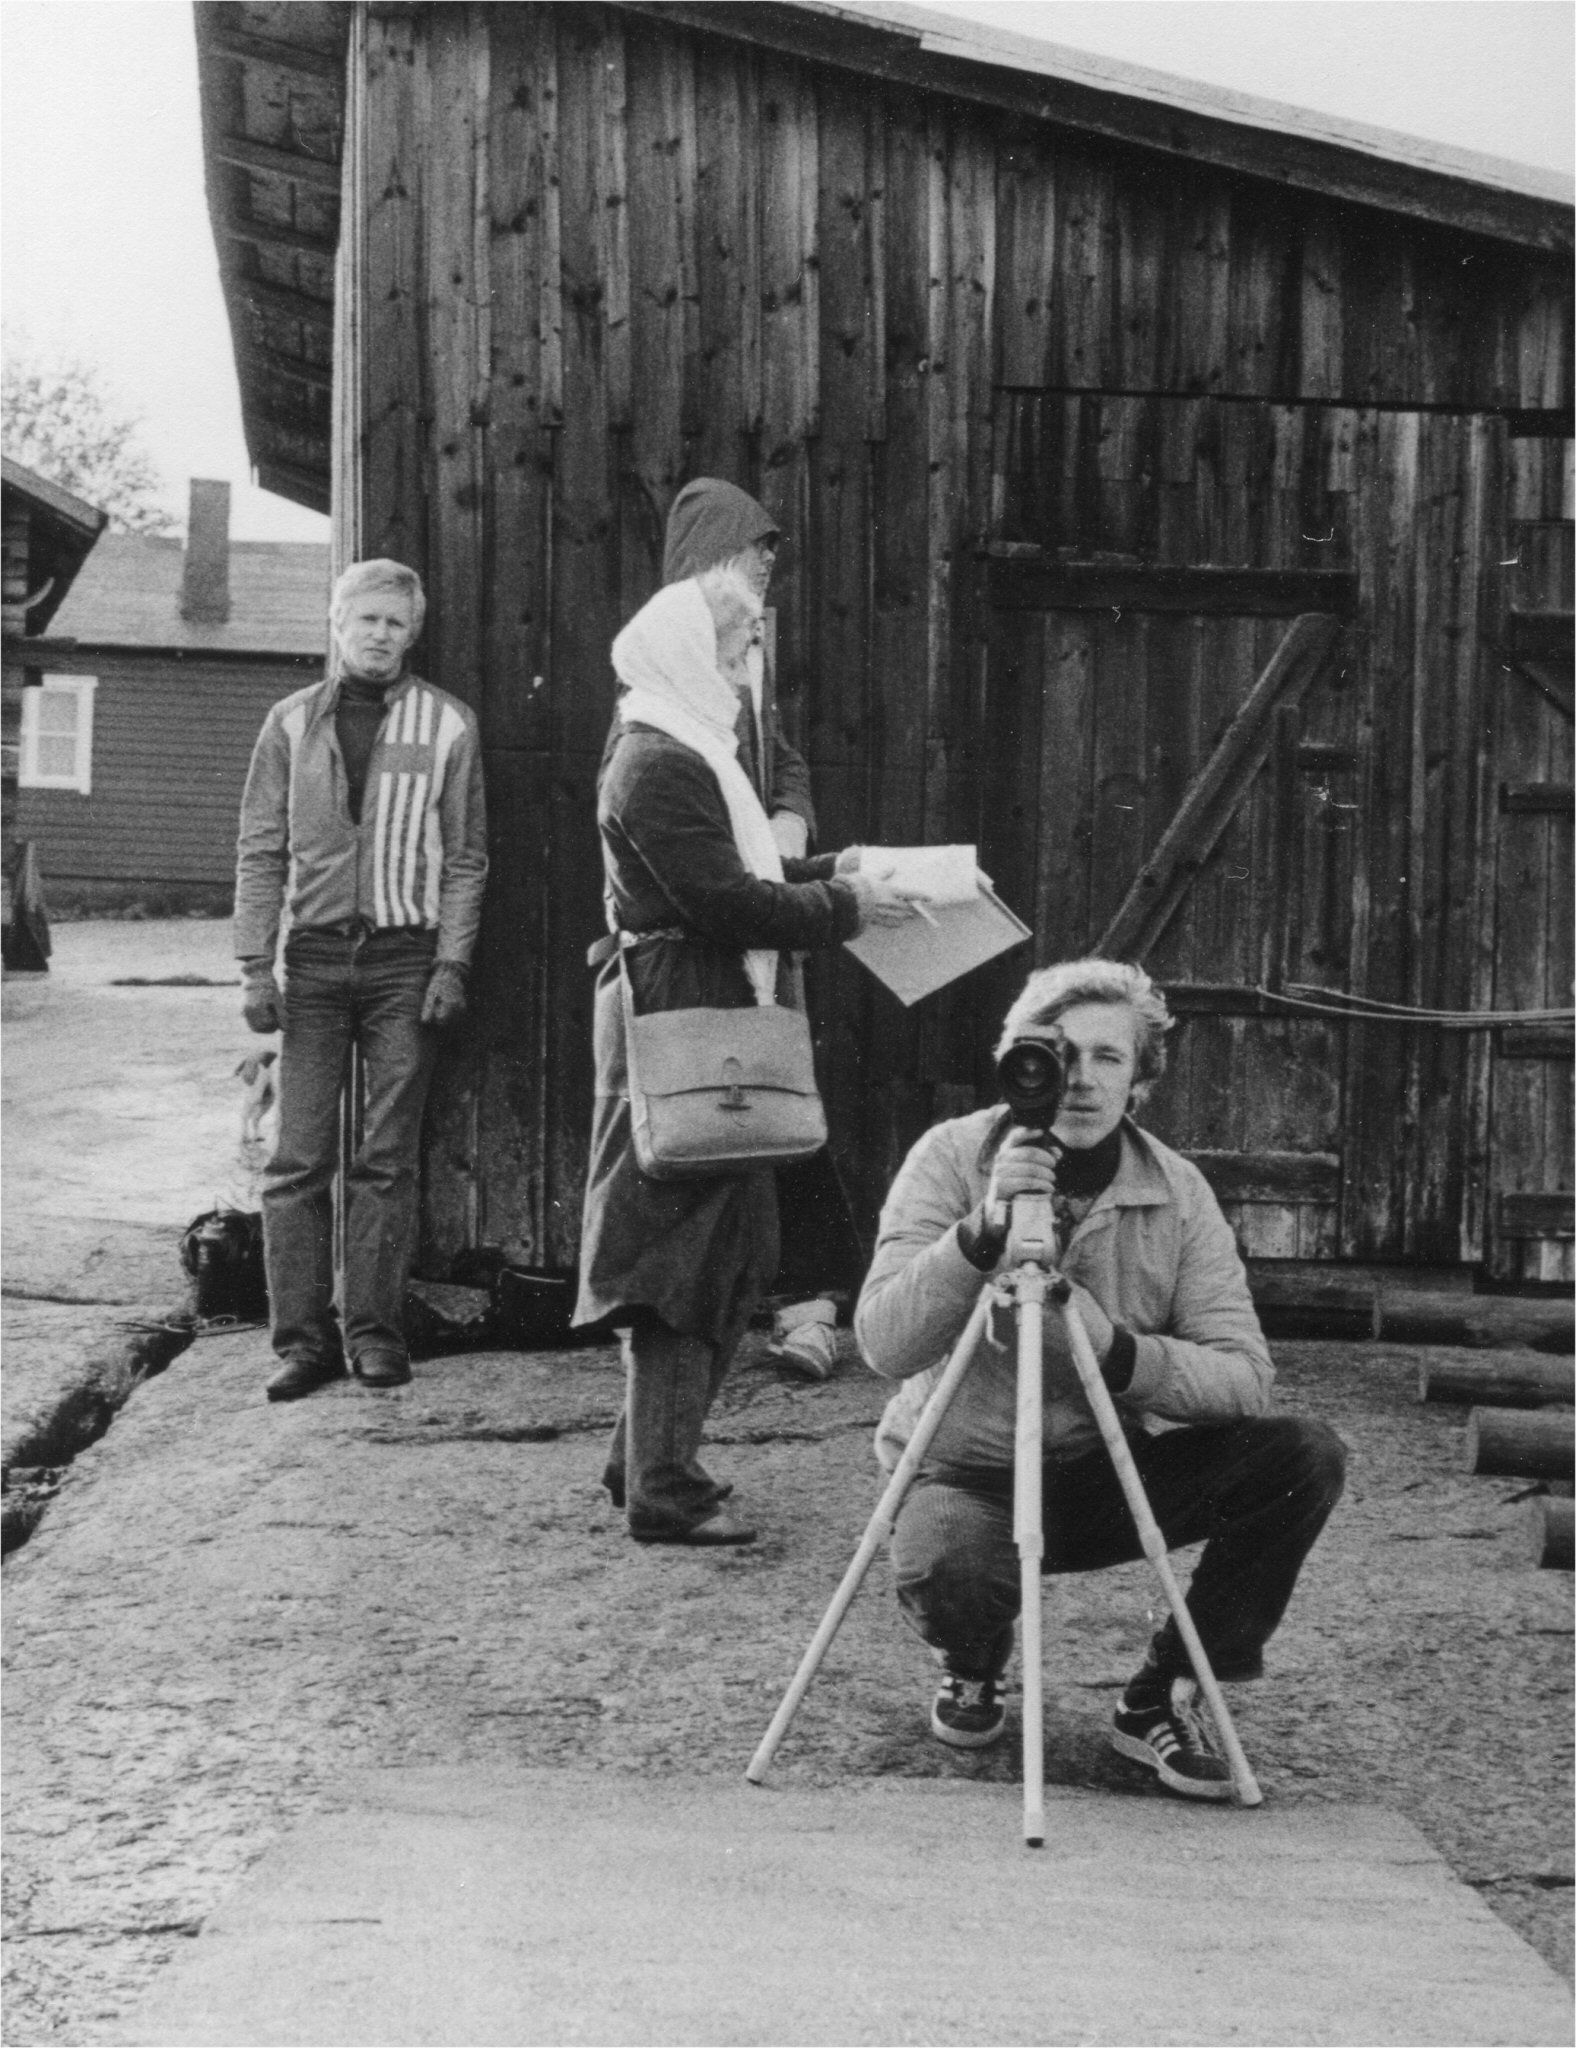 four people and camera in black and white country setting